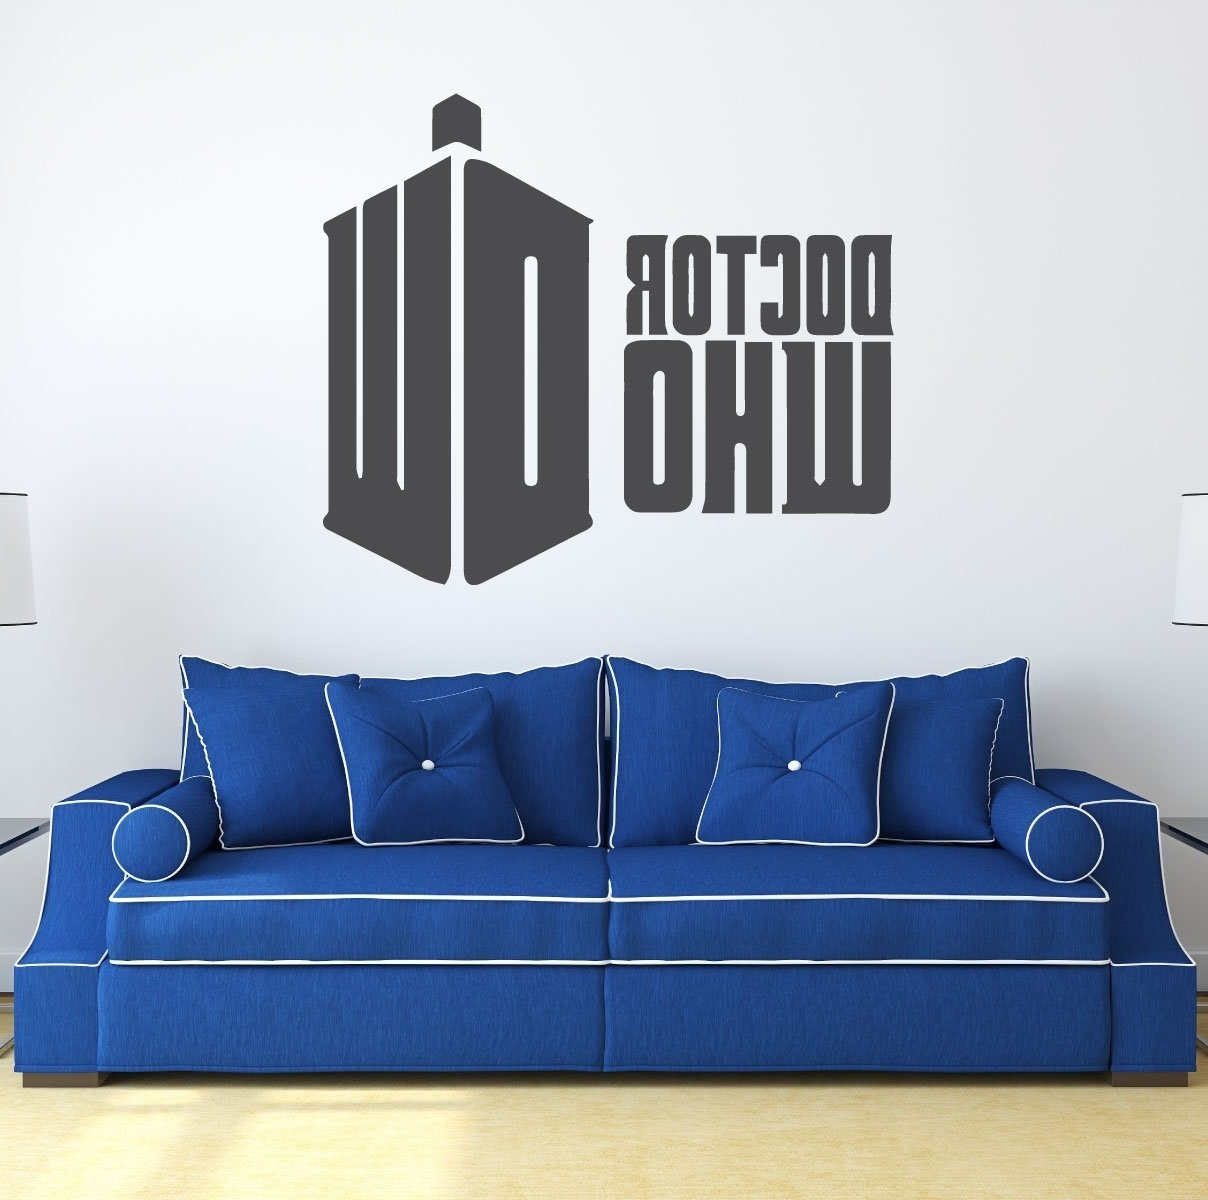 Best And Newest Doctor Who Wall Art Intended For Doctor Who Wall Art – Doctor Who Dw – Whovian Gifts (View 4 of 15)